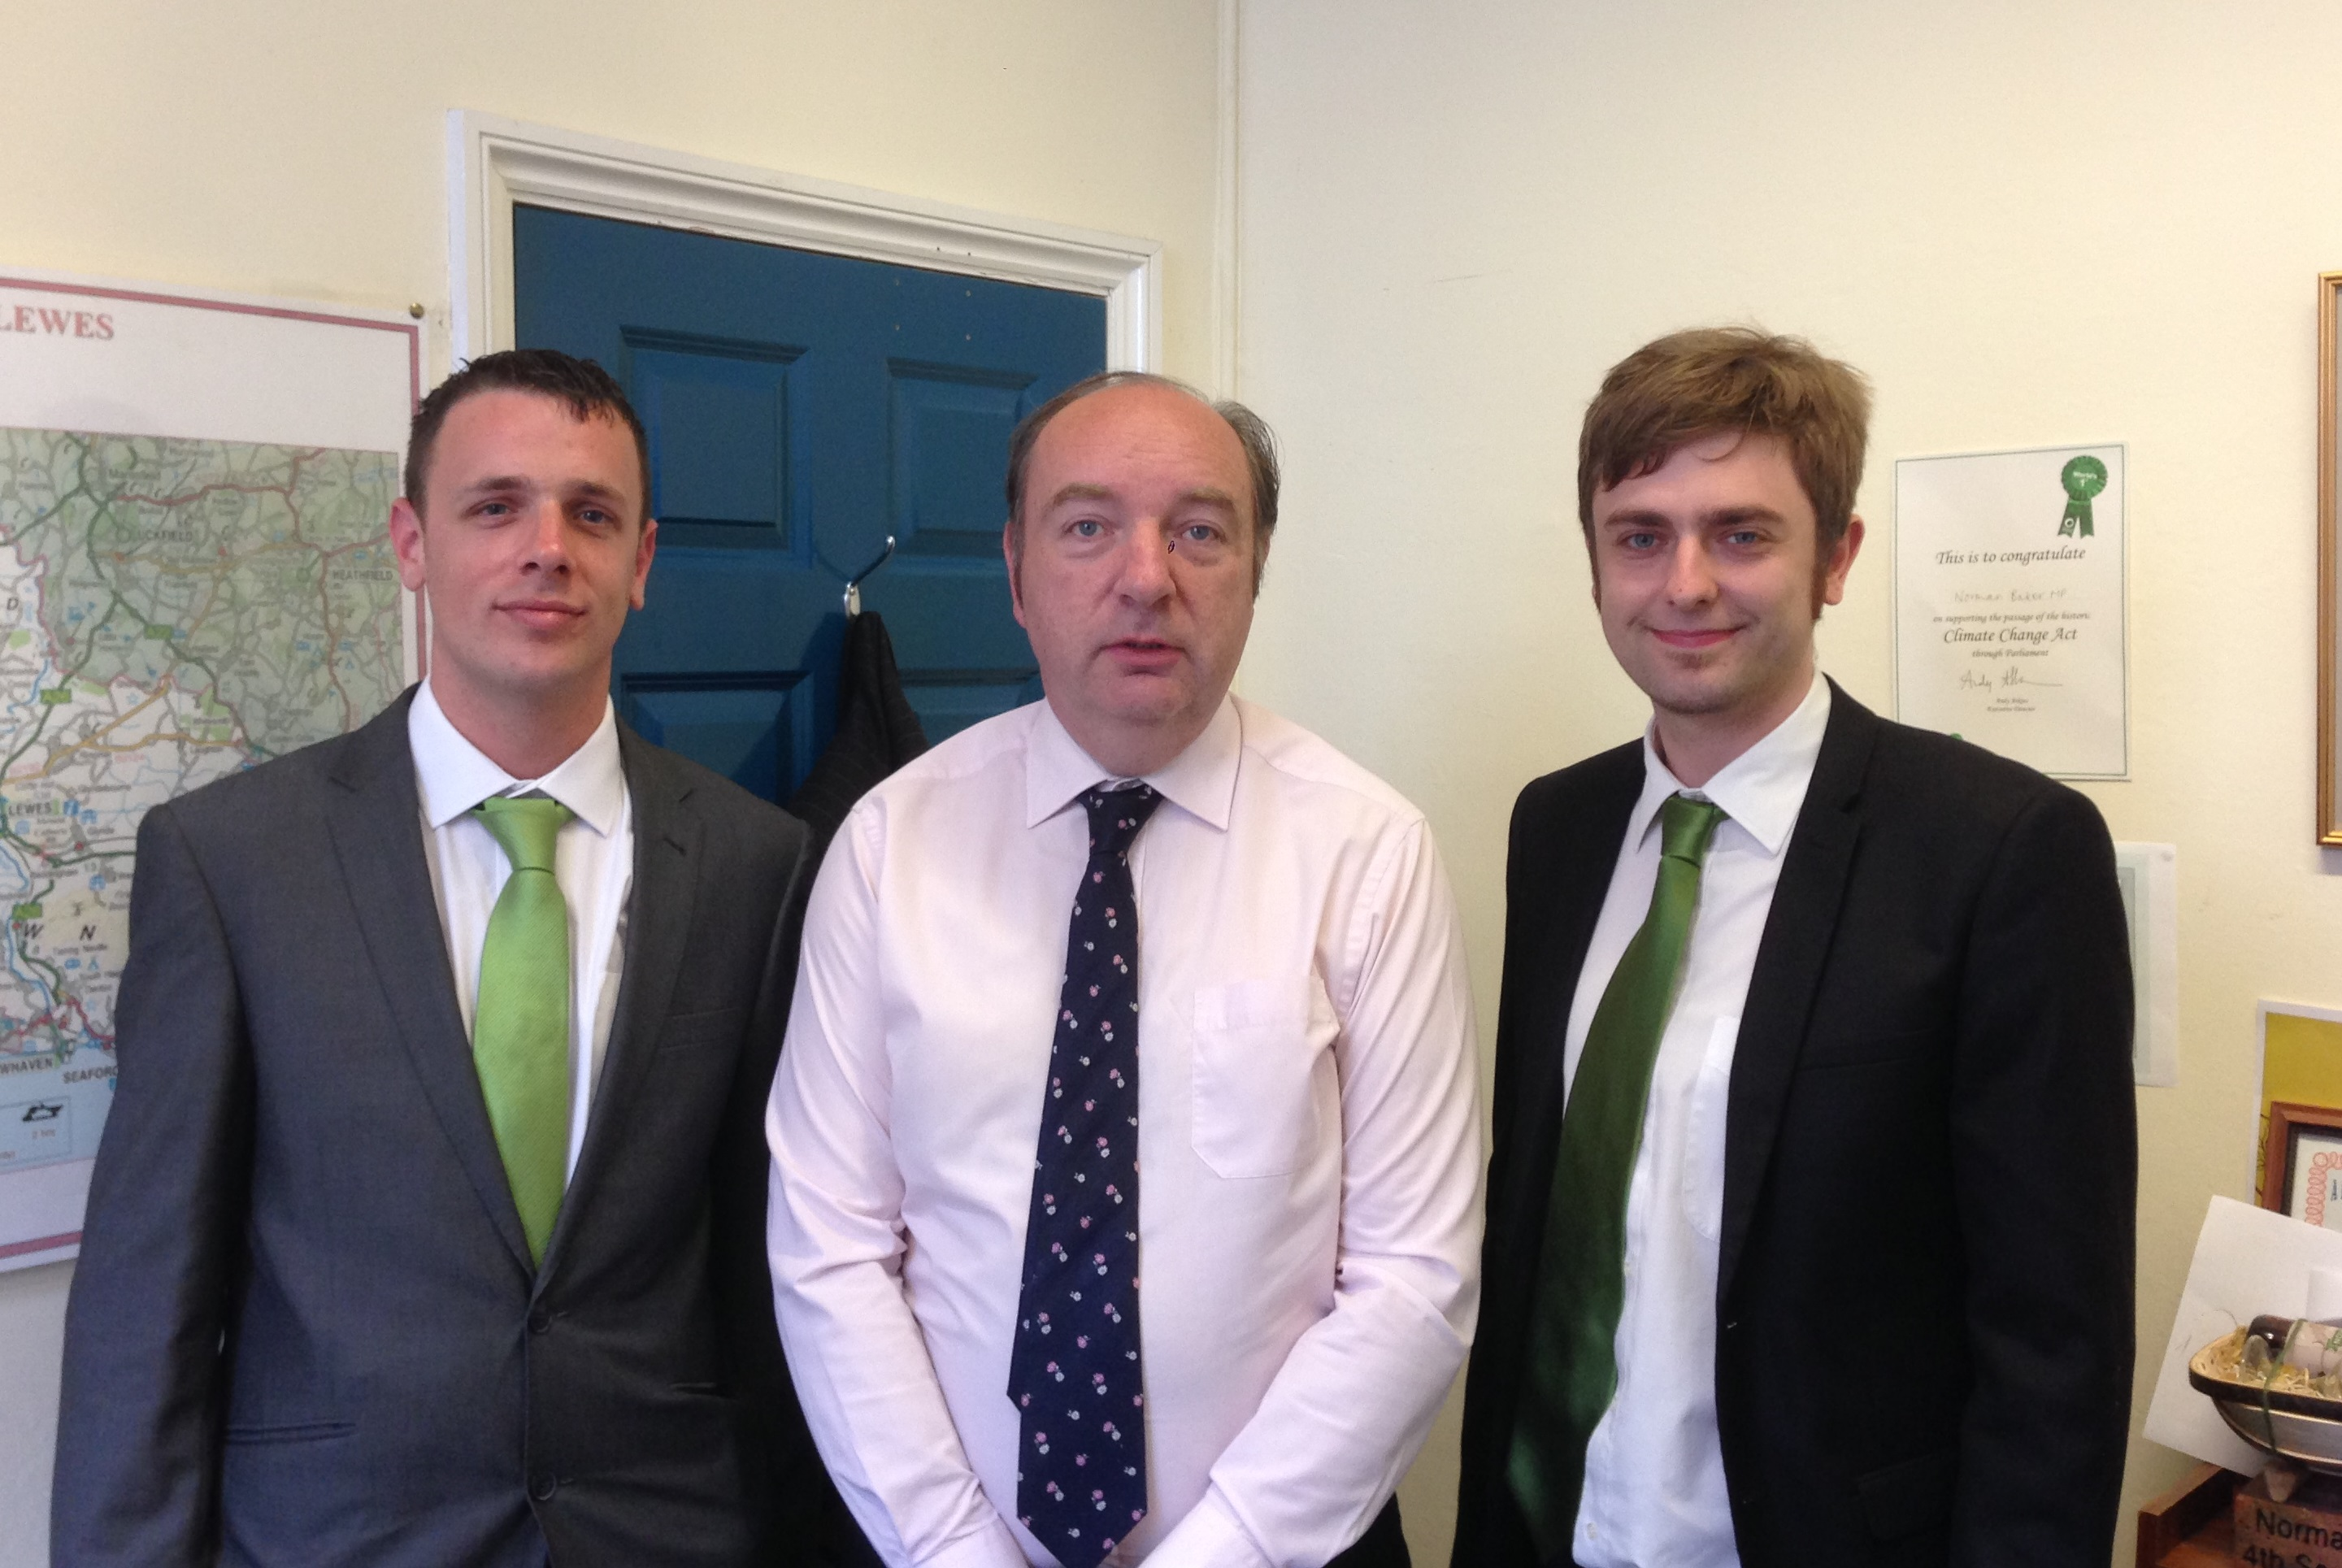 norman baker MP , keiron and clarke